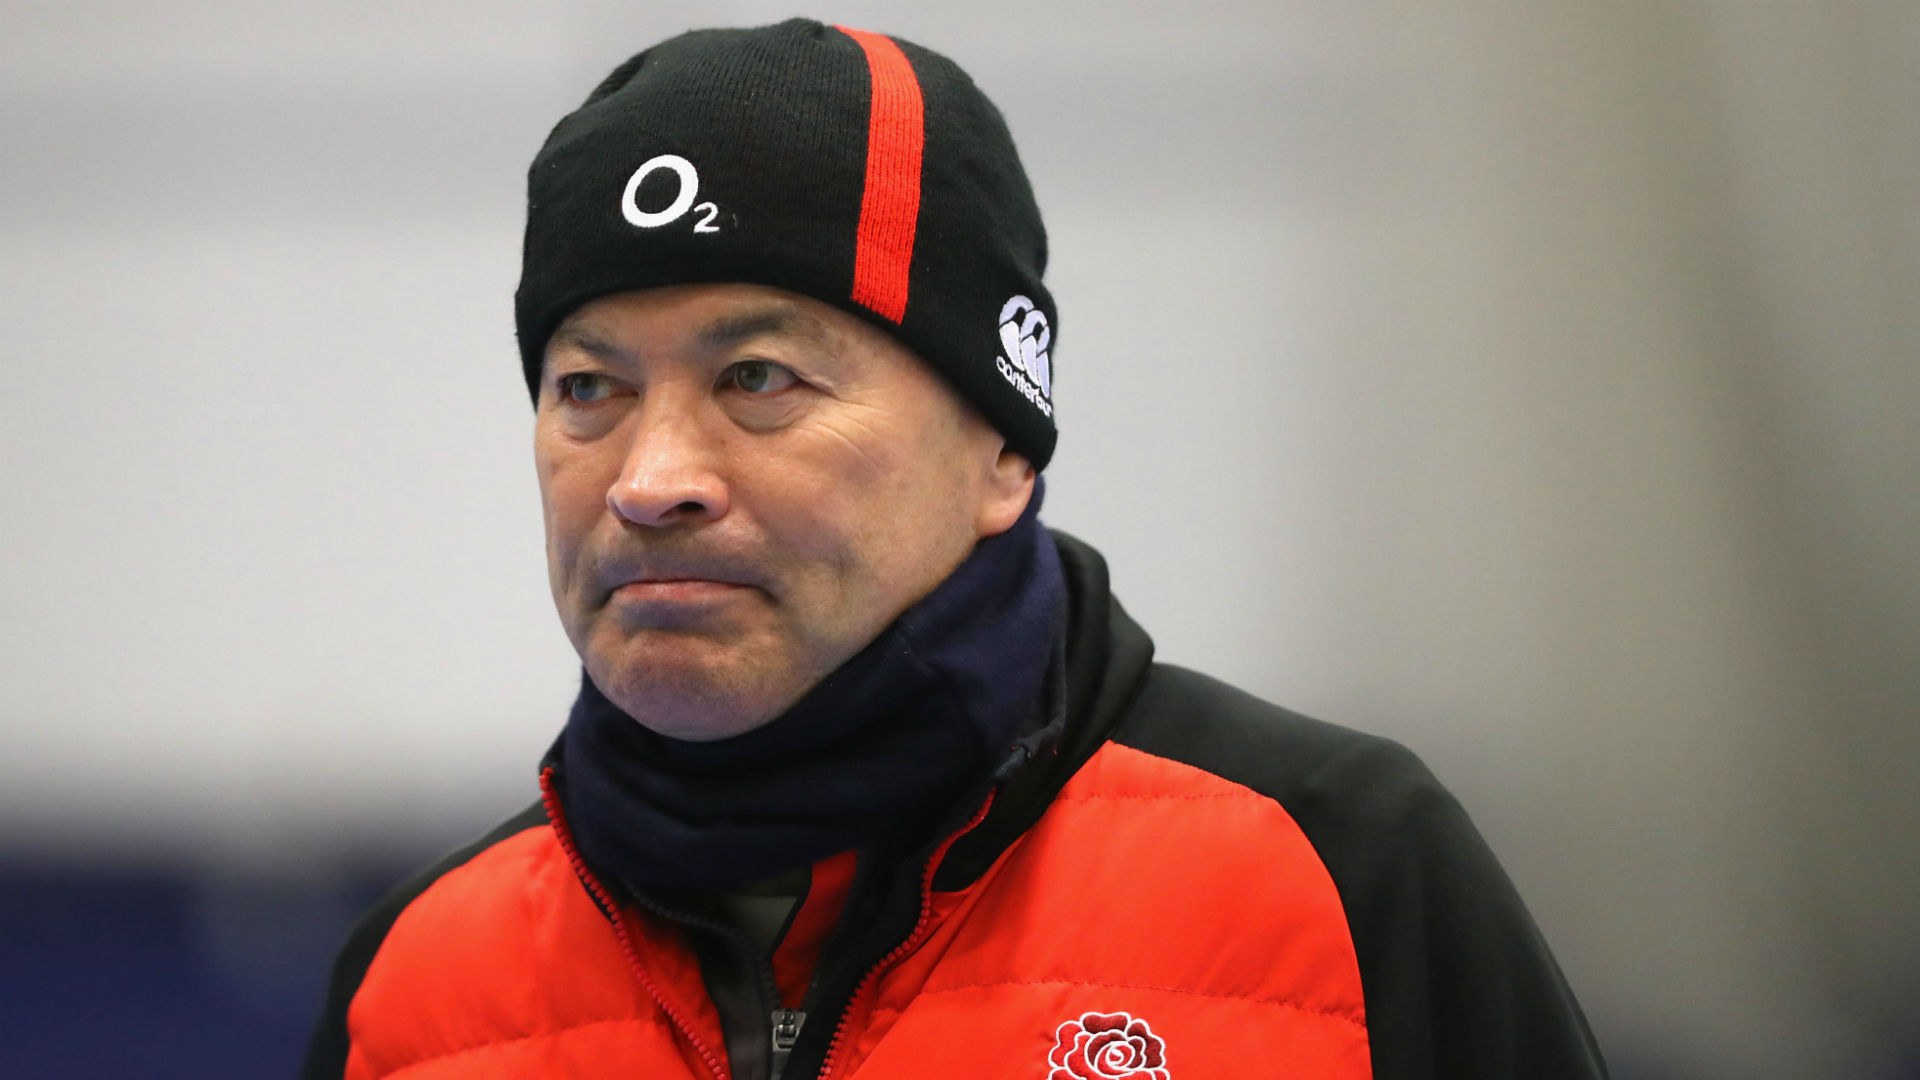 """Eddie Jones said he feared for his safety on Sunday and Scottish Rugby said it is """"appalled"""" by the abuse he suffered."""